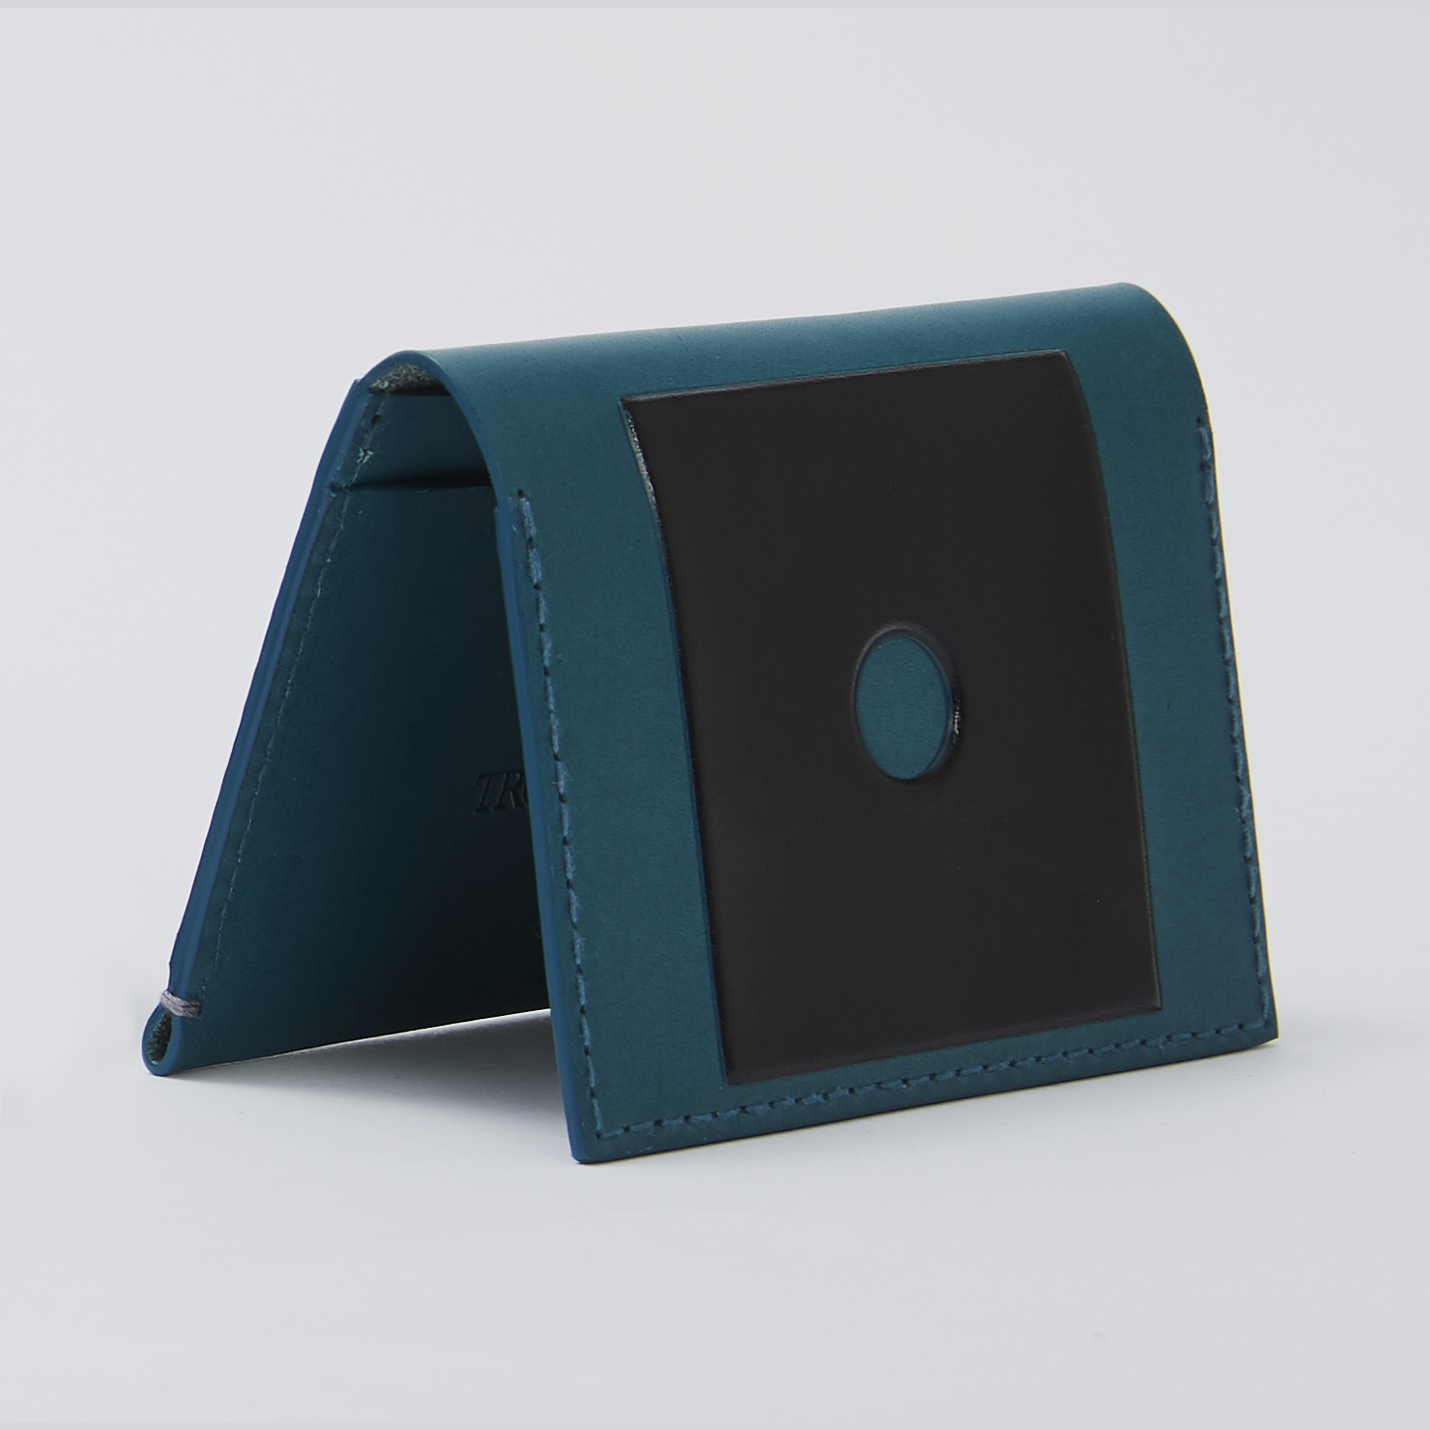 NEW Troubadour Colourful Wallet Collection - Teal Card Wallet.jpg